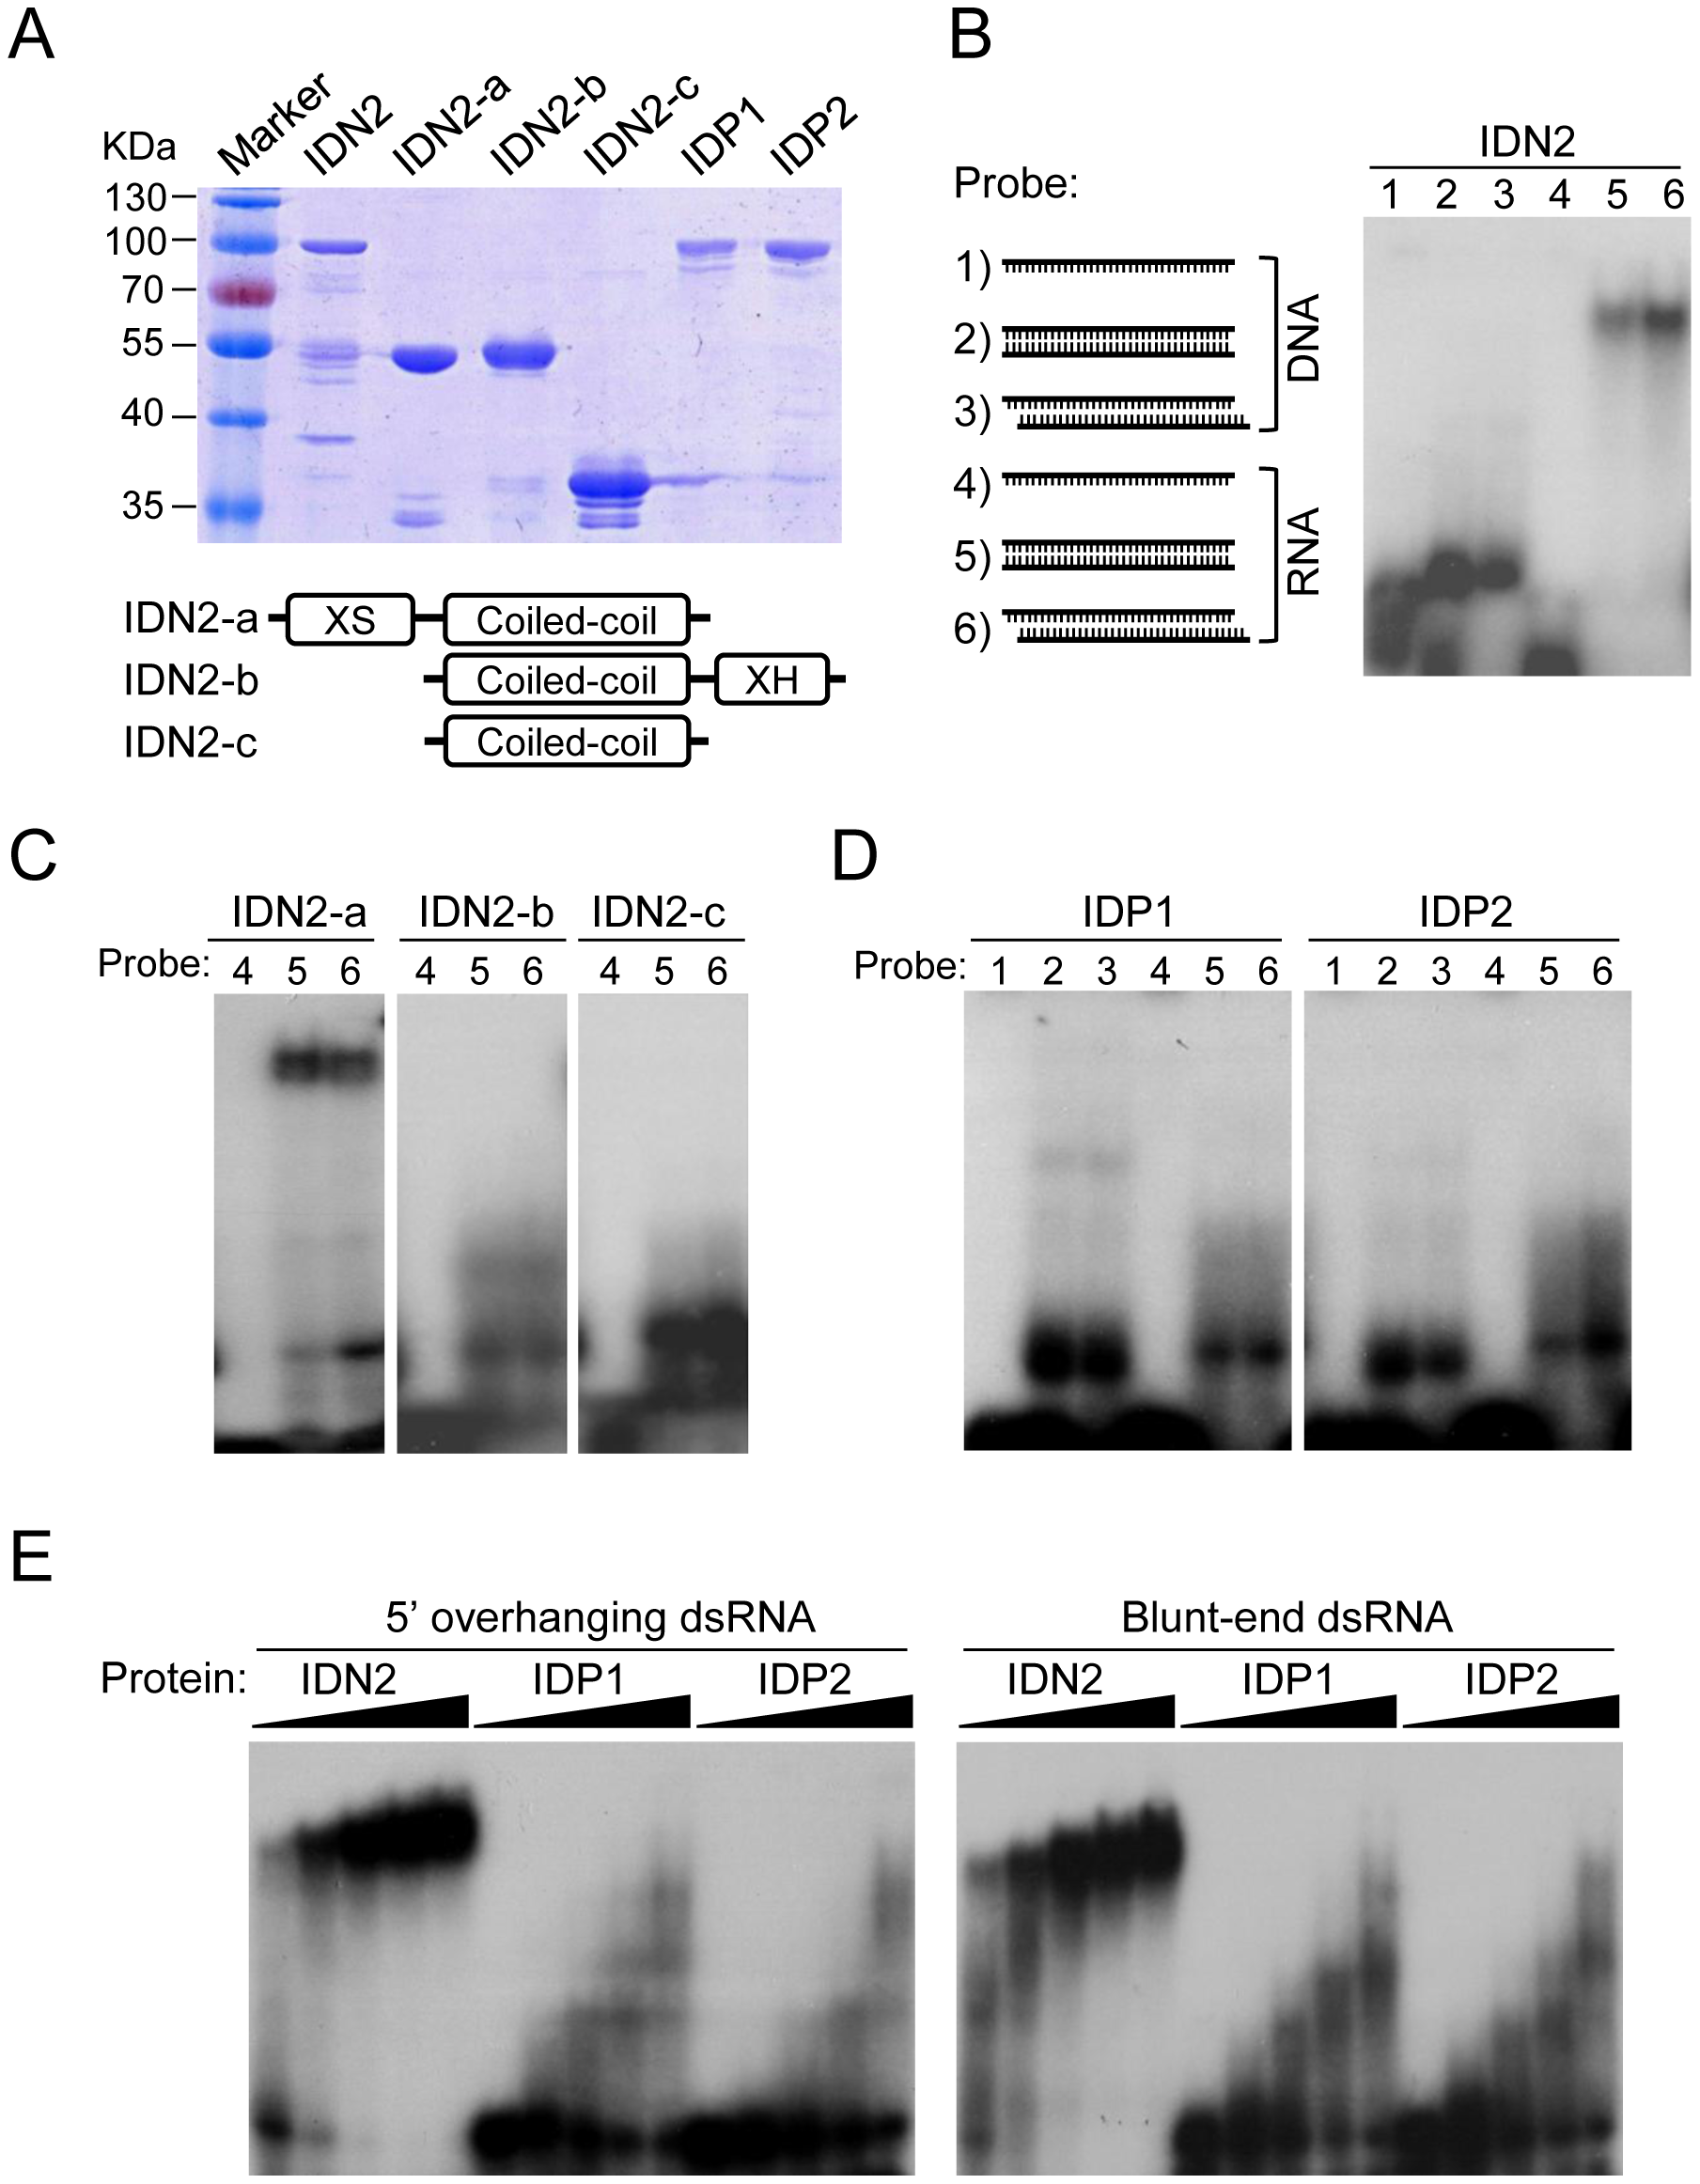 IDN2, but not IDP1 or IDP2, binds double-stranded RNA.